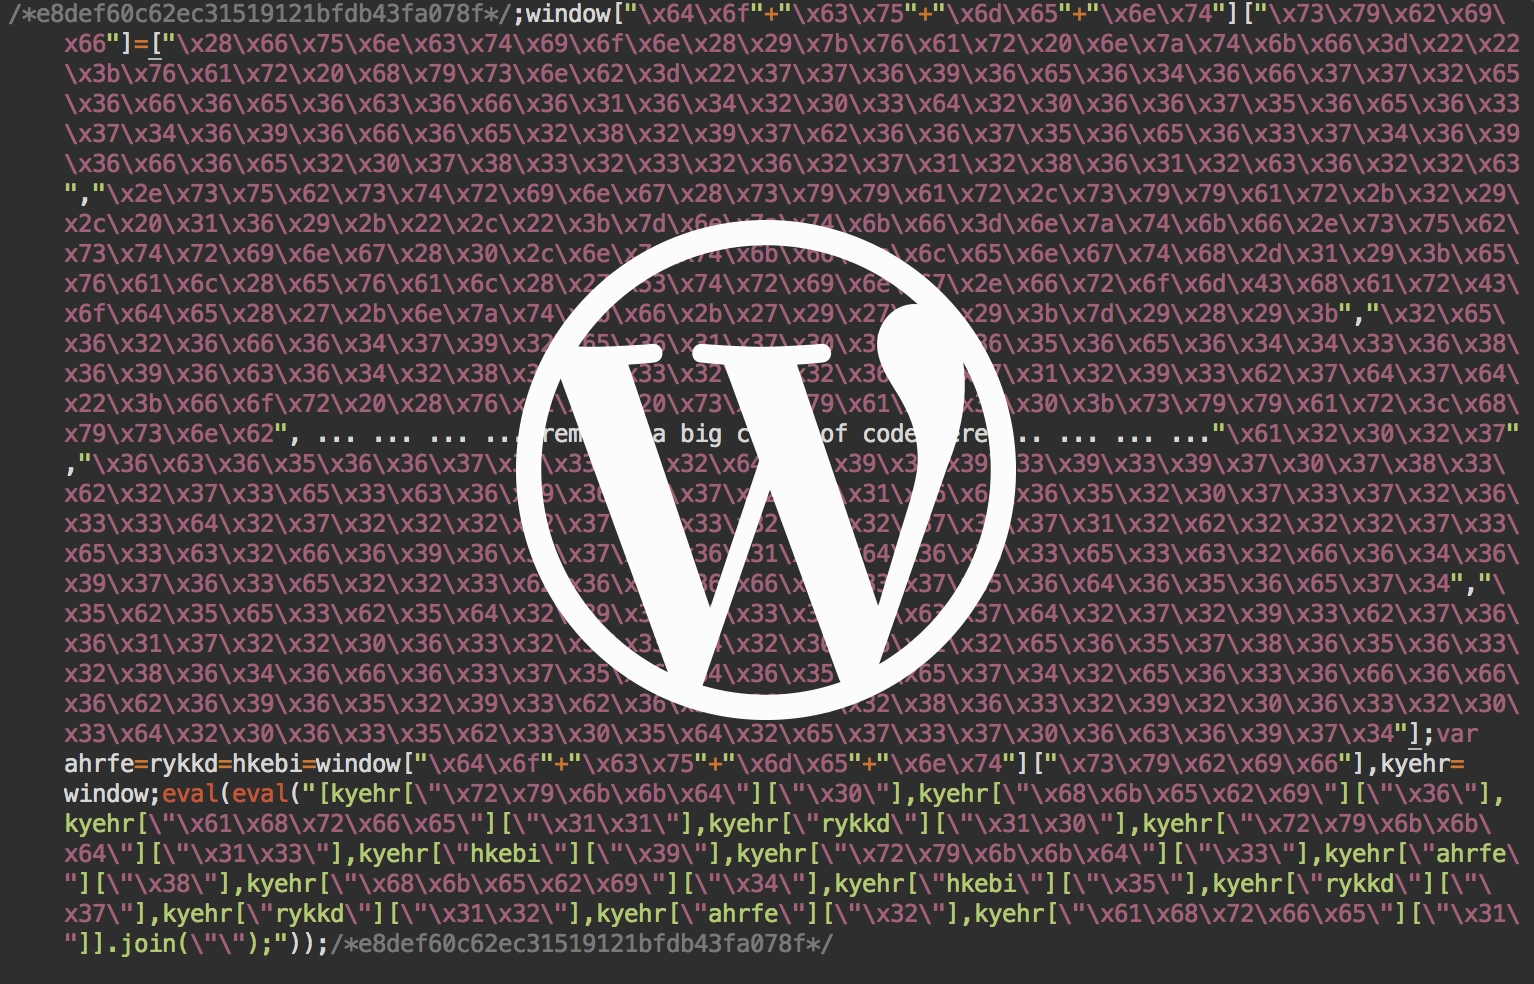 Wordpress malware